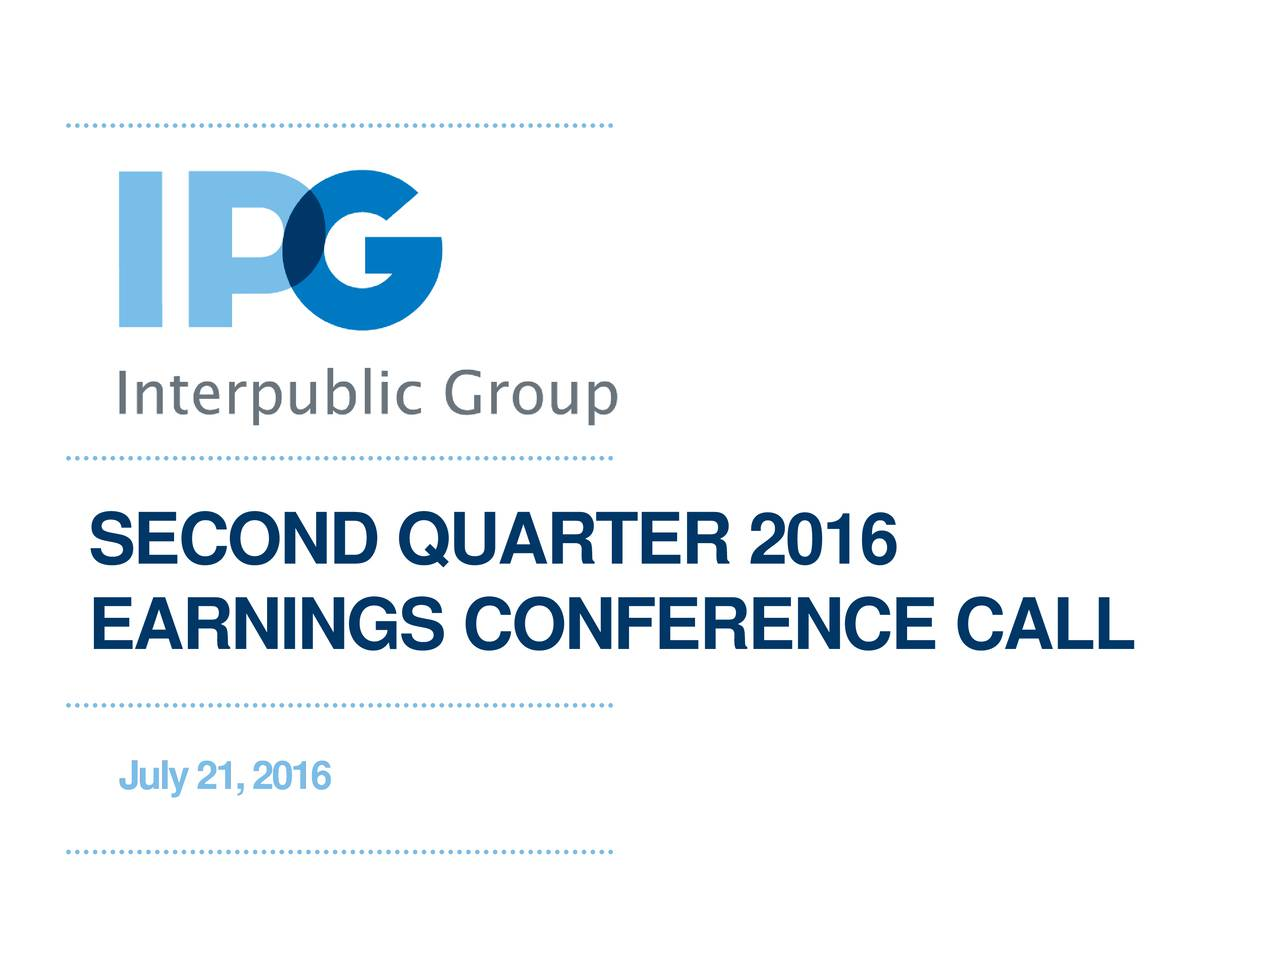 EARNINGS CONFERENCE CALL July 21, 2016